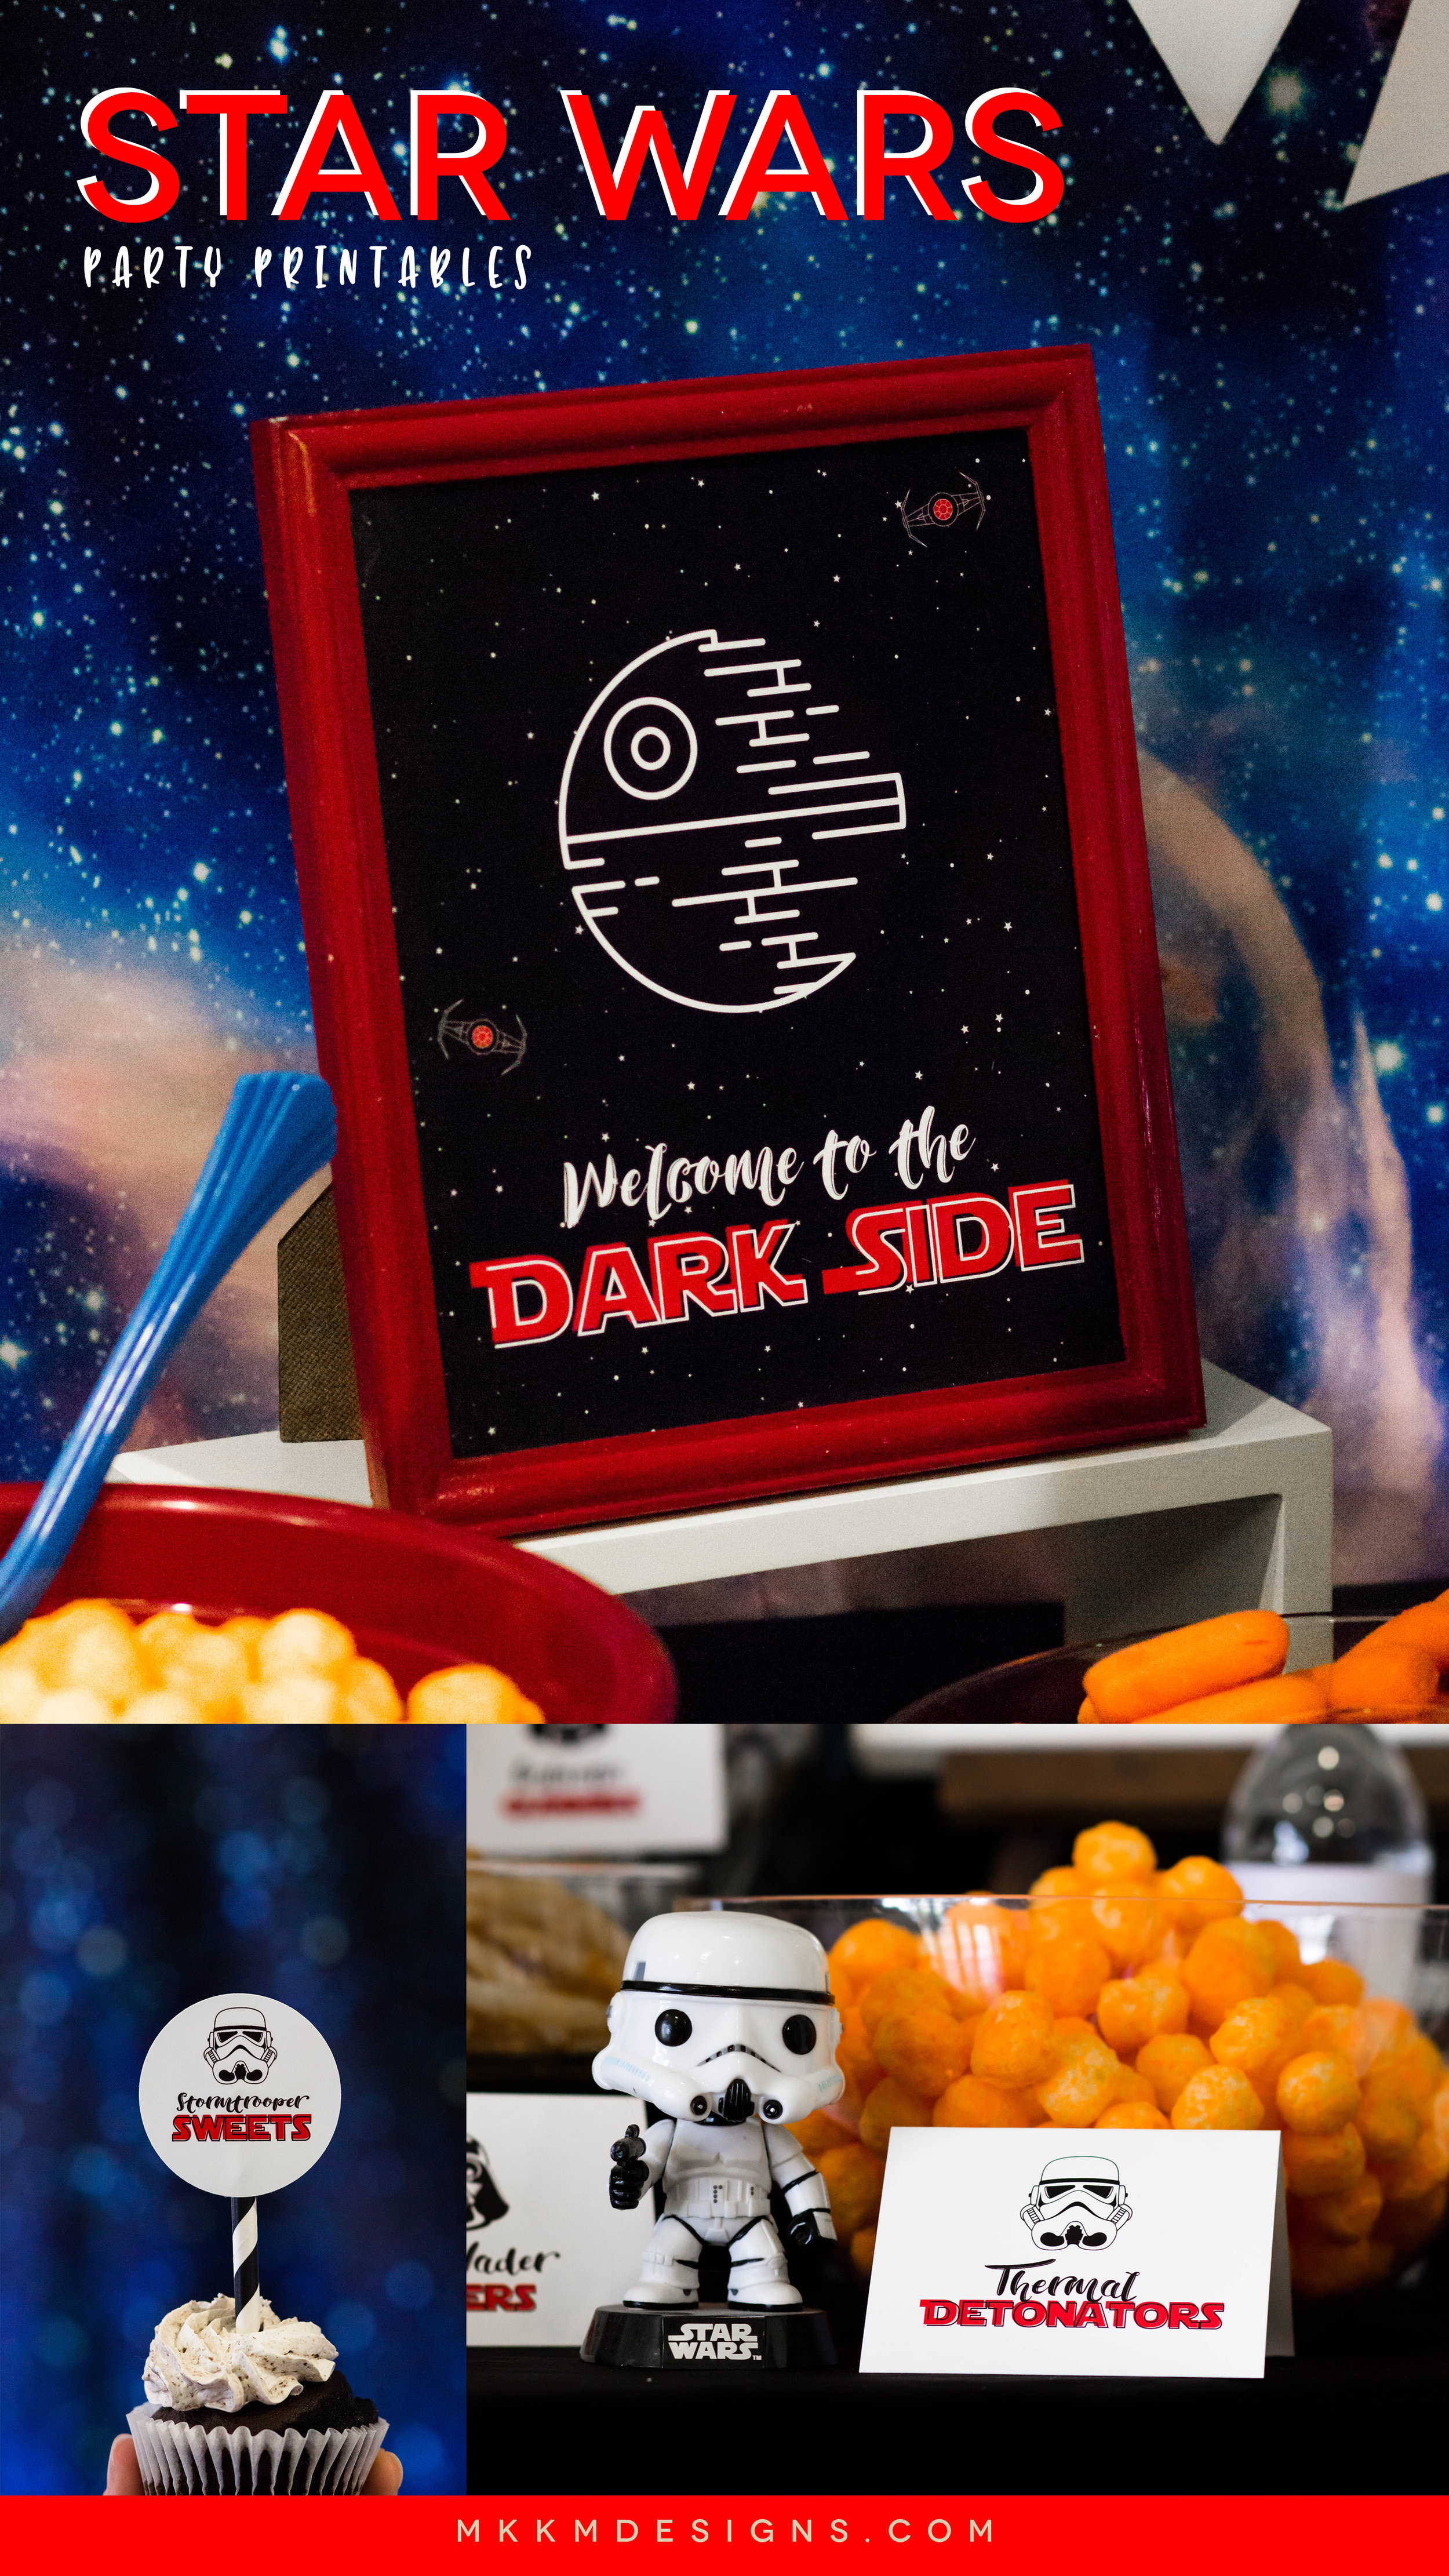 Star Wars Party Ideas and free printables. Get inspired at shopmkkm.com // Grab the free printable Star Wars birthday signs.